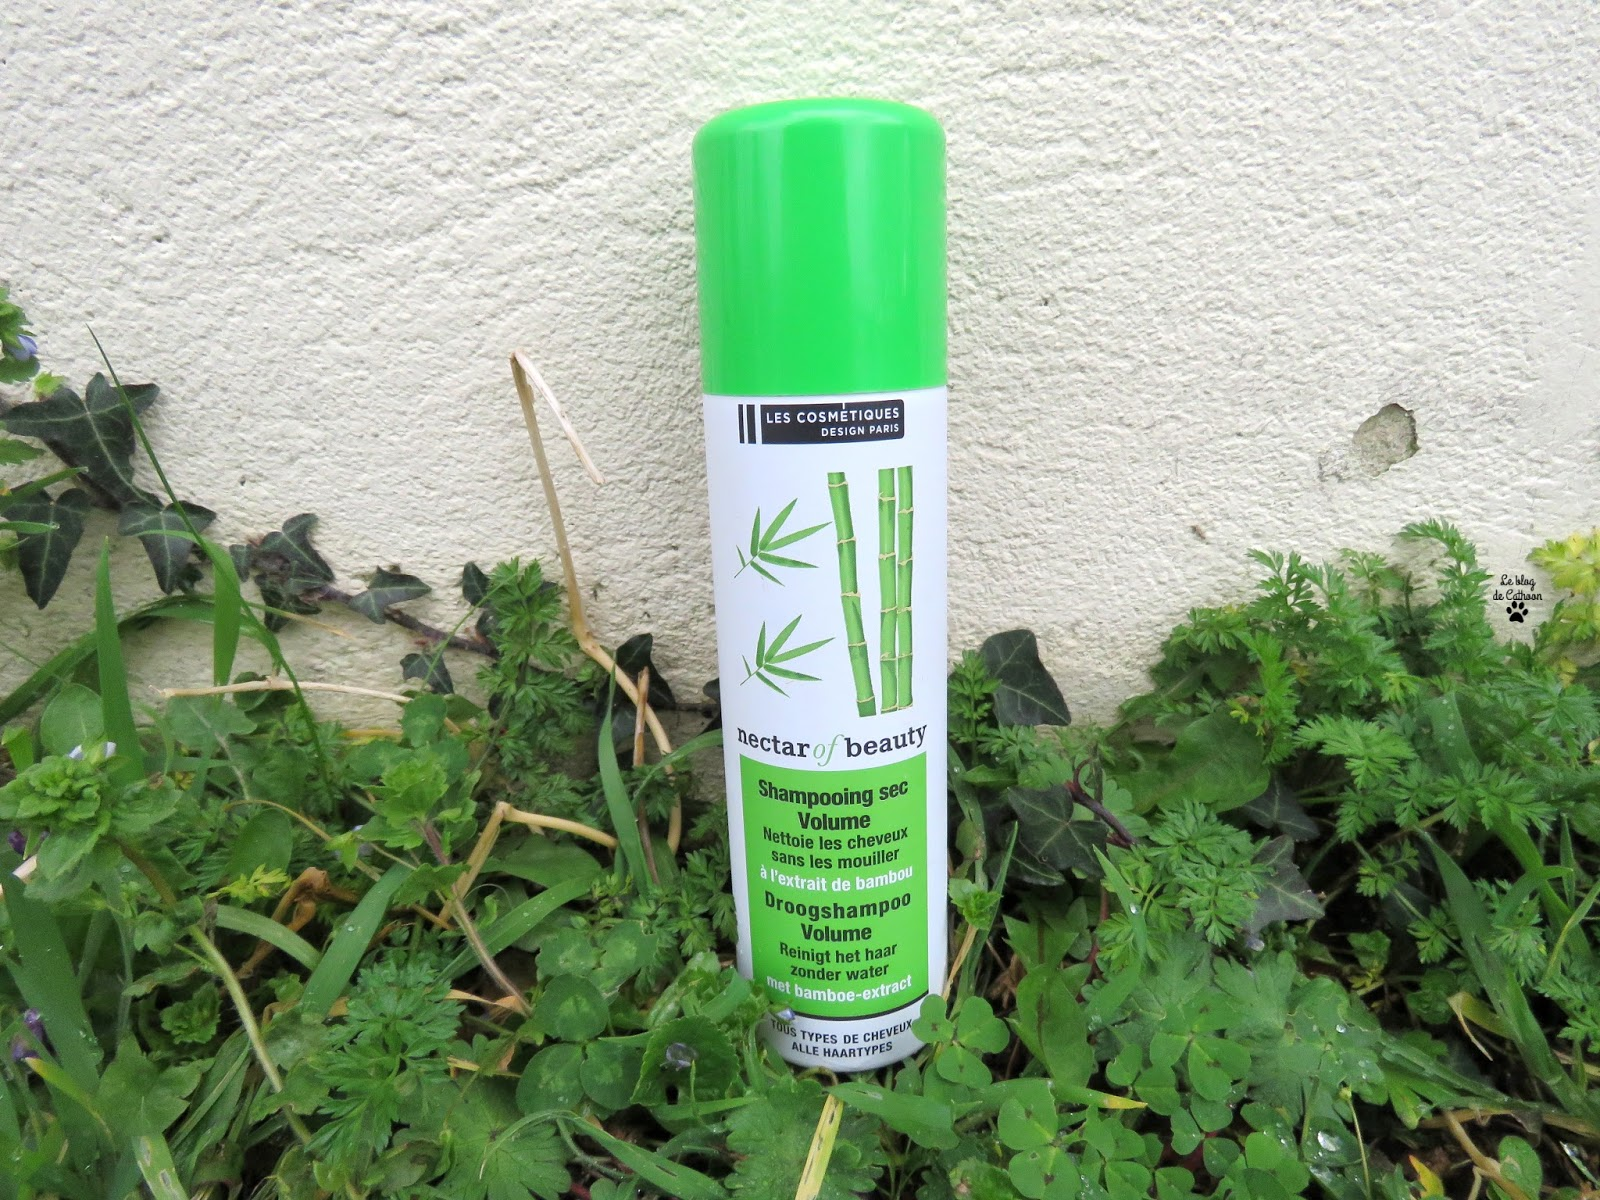 Shampoing Sec Volume - Nectar Of Beauty - Carrefour